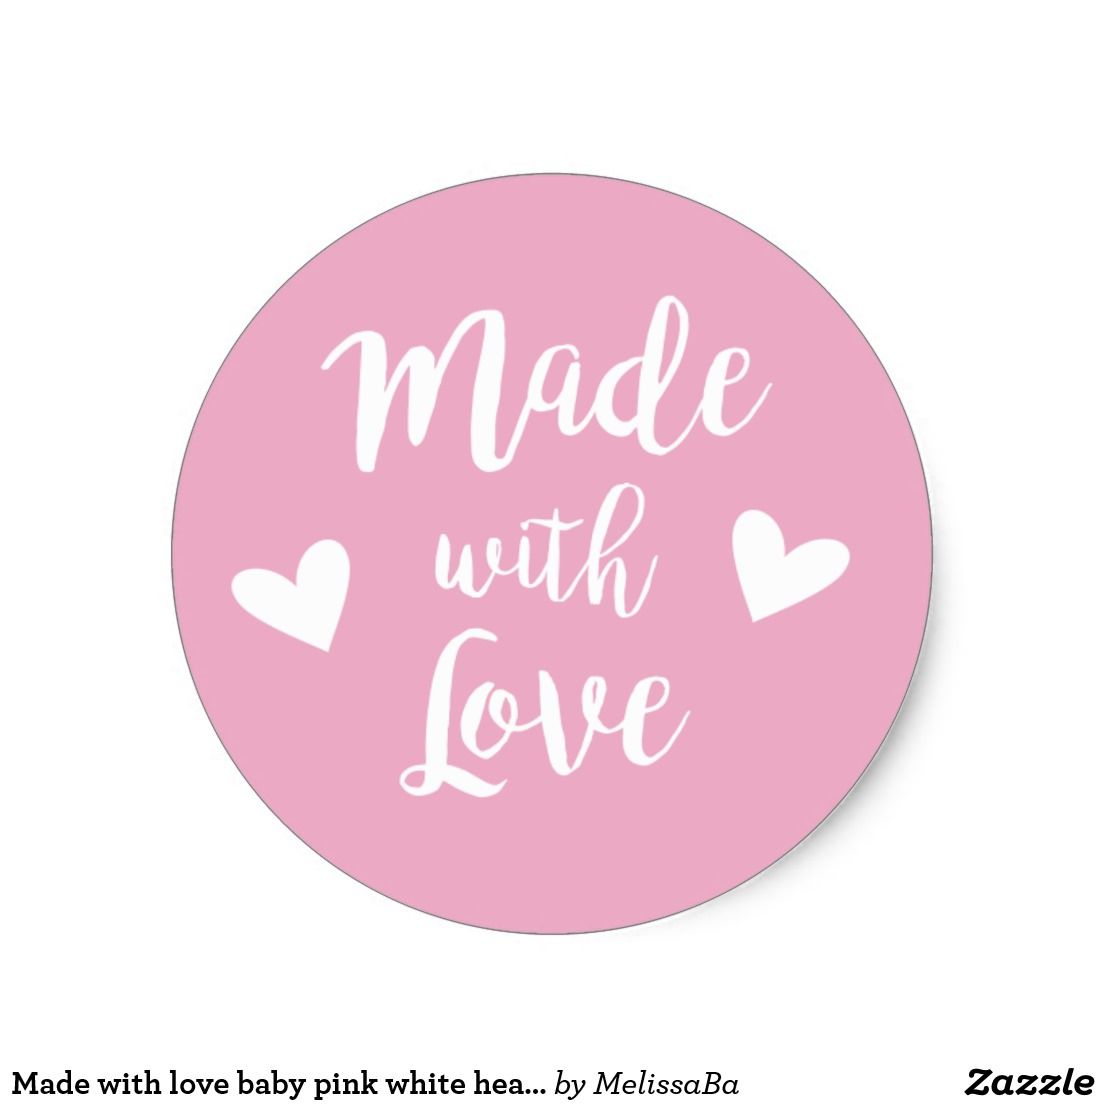 25 unid braguitas Pegatina Sticker aproximadamente Handmade with love-made with Love selbstgemach